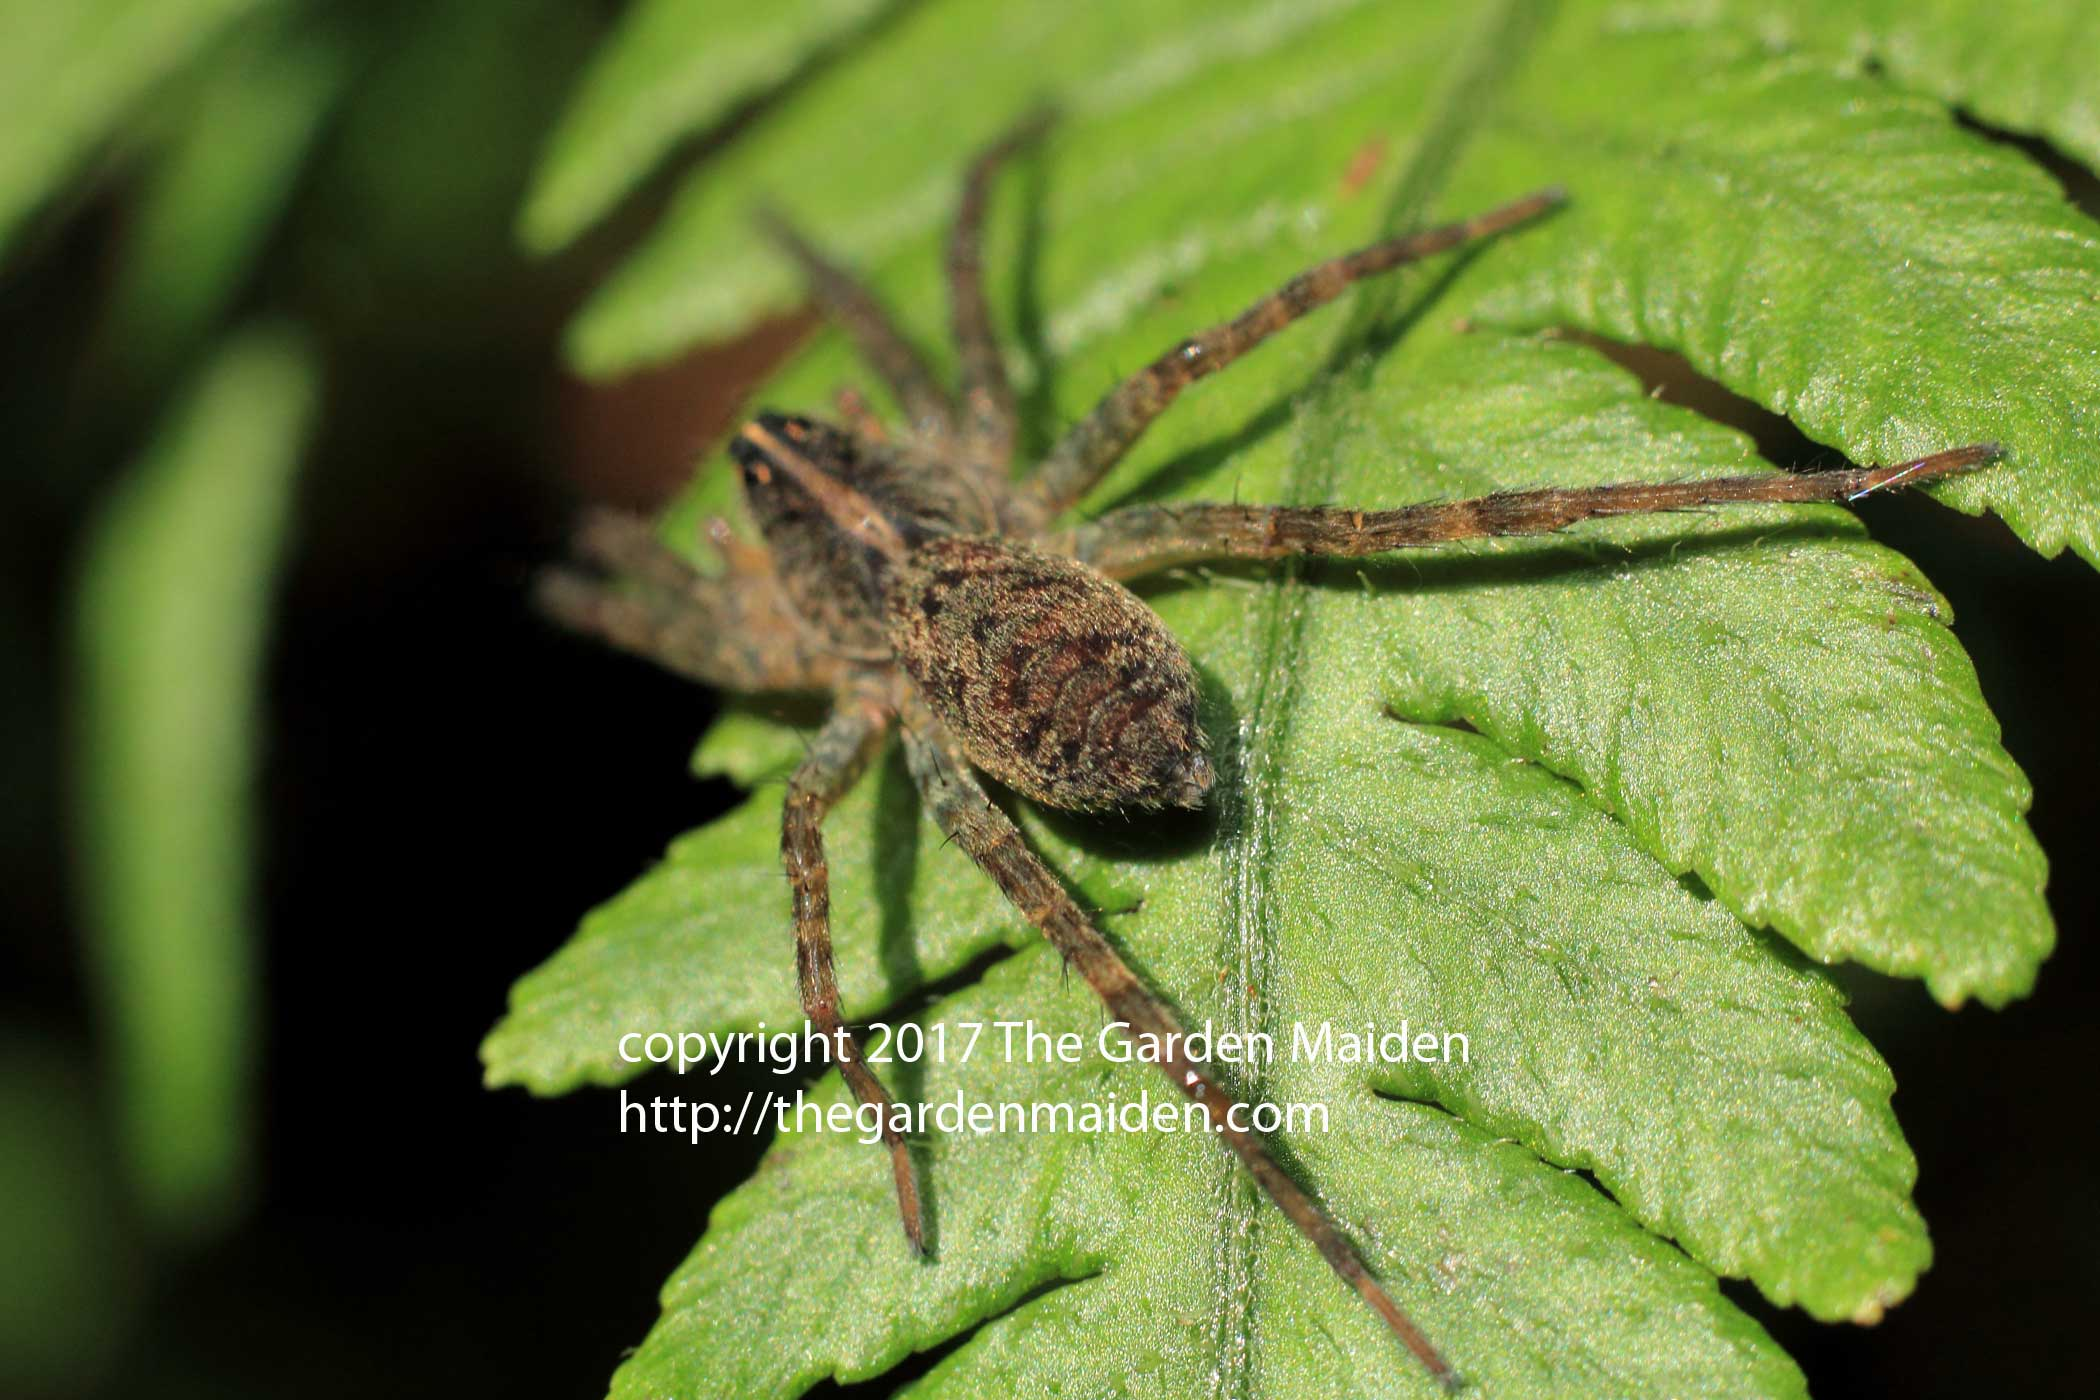 My Best U201cguessu201d Is Perhaps A Grass Spider, Agelenopsis Spp.? If You Can  Positively Identify What I Believe Is A Common Spider, Please Let Me Know.